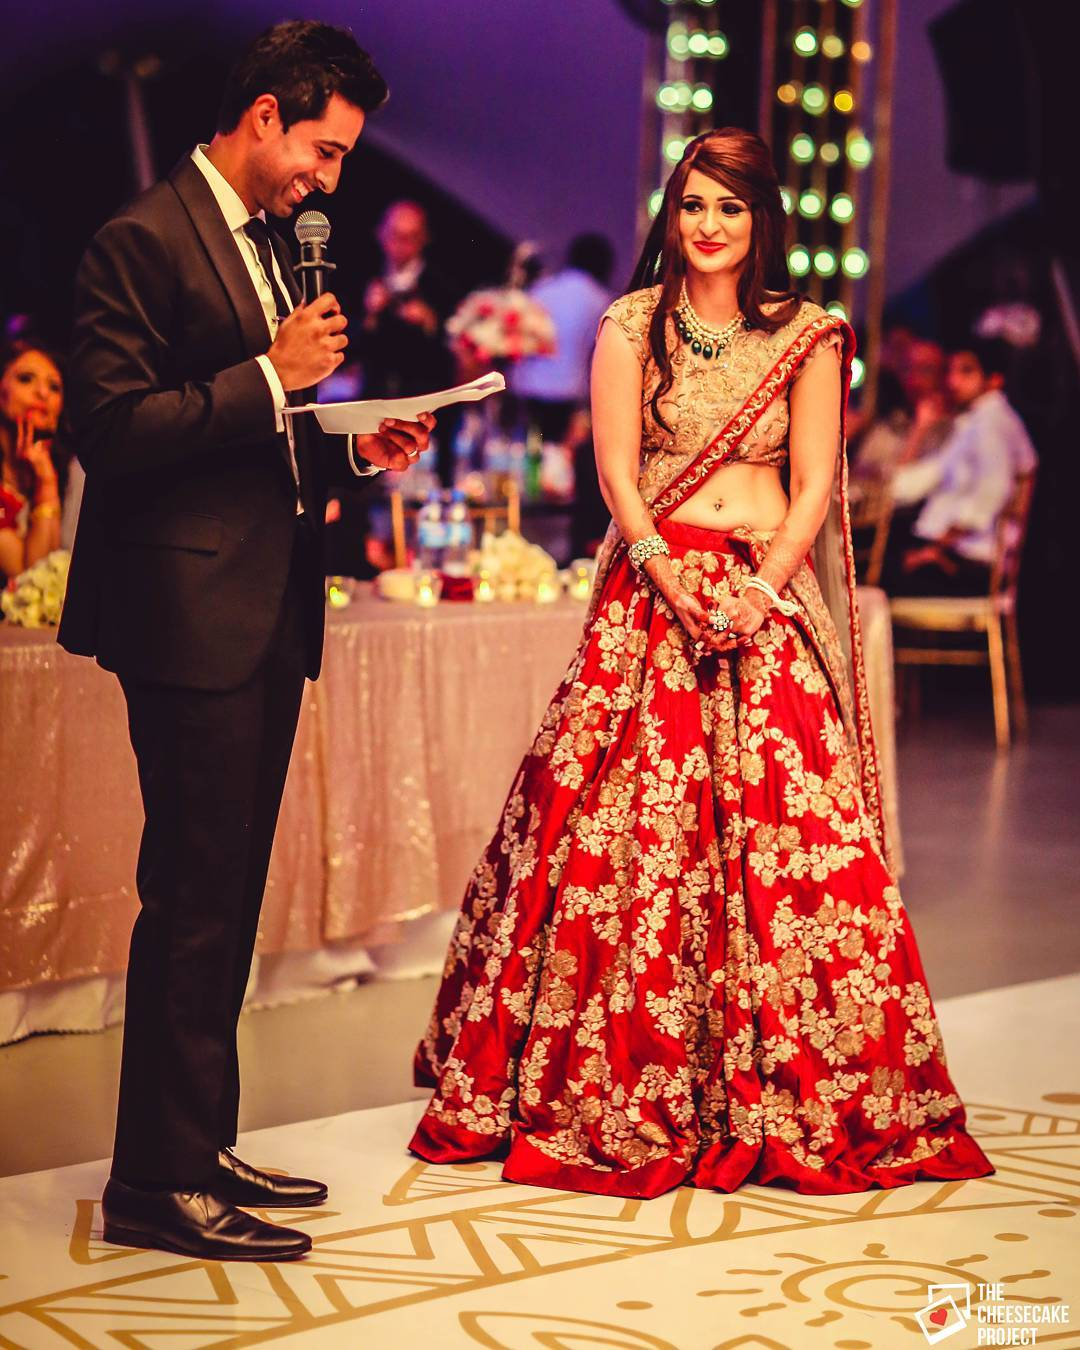 The classic red Designer Bridal Lehengas for Indian Wedding